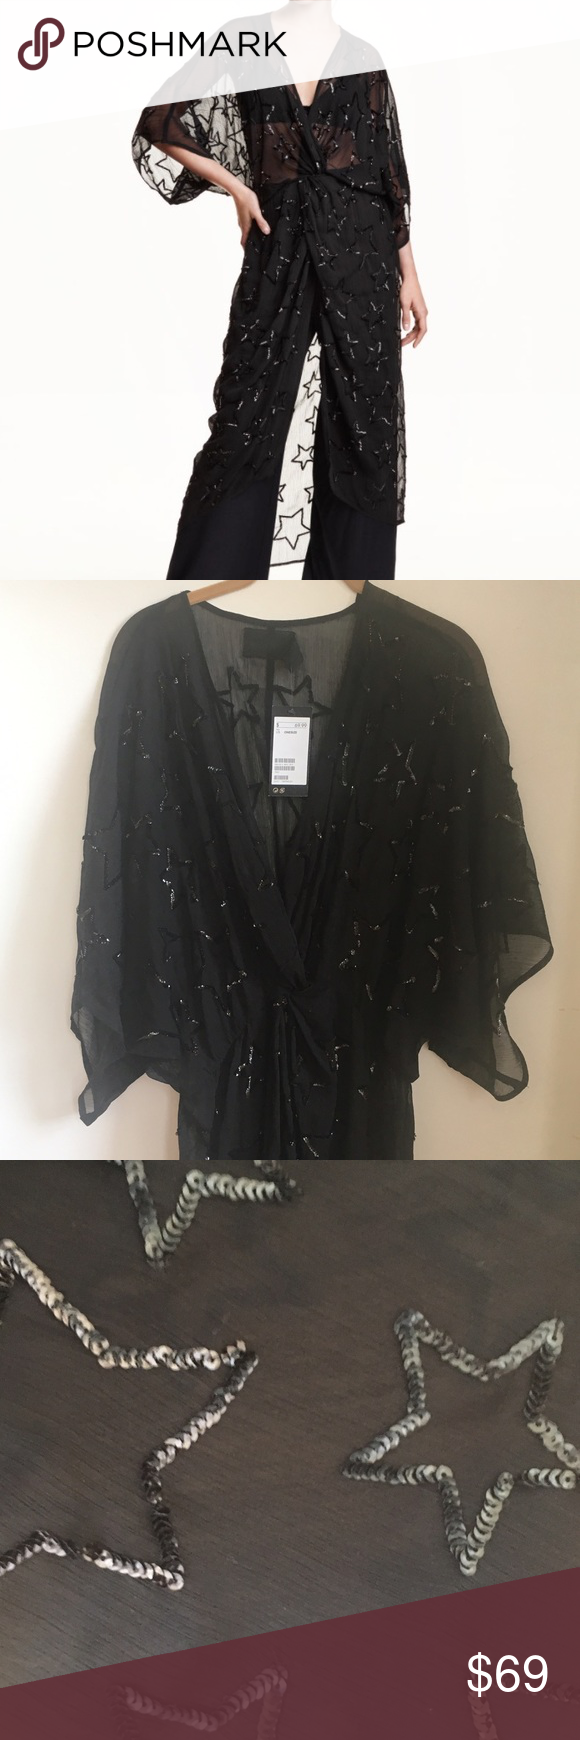 Sequin star kimono dress Black sheer kimono drapery dress with black sequin stars - hi lo tulip front -batwing sleeves- elastic waist one size - wear over a slip as a dress, over jeans or black pants as a tunic, or over a bathing suit as a cool coverup!  BRAND NEW WITH TAGS H & M Dresses High Low